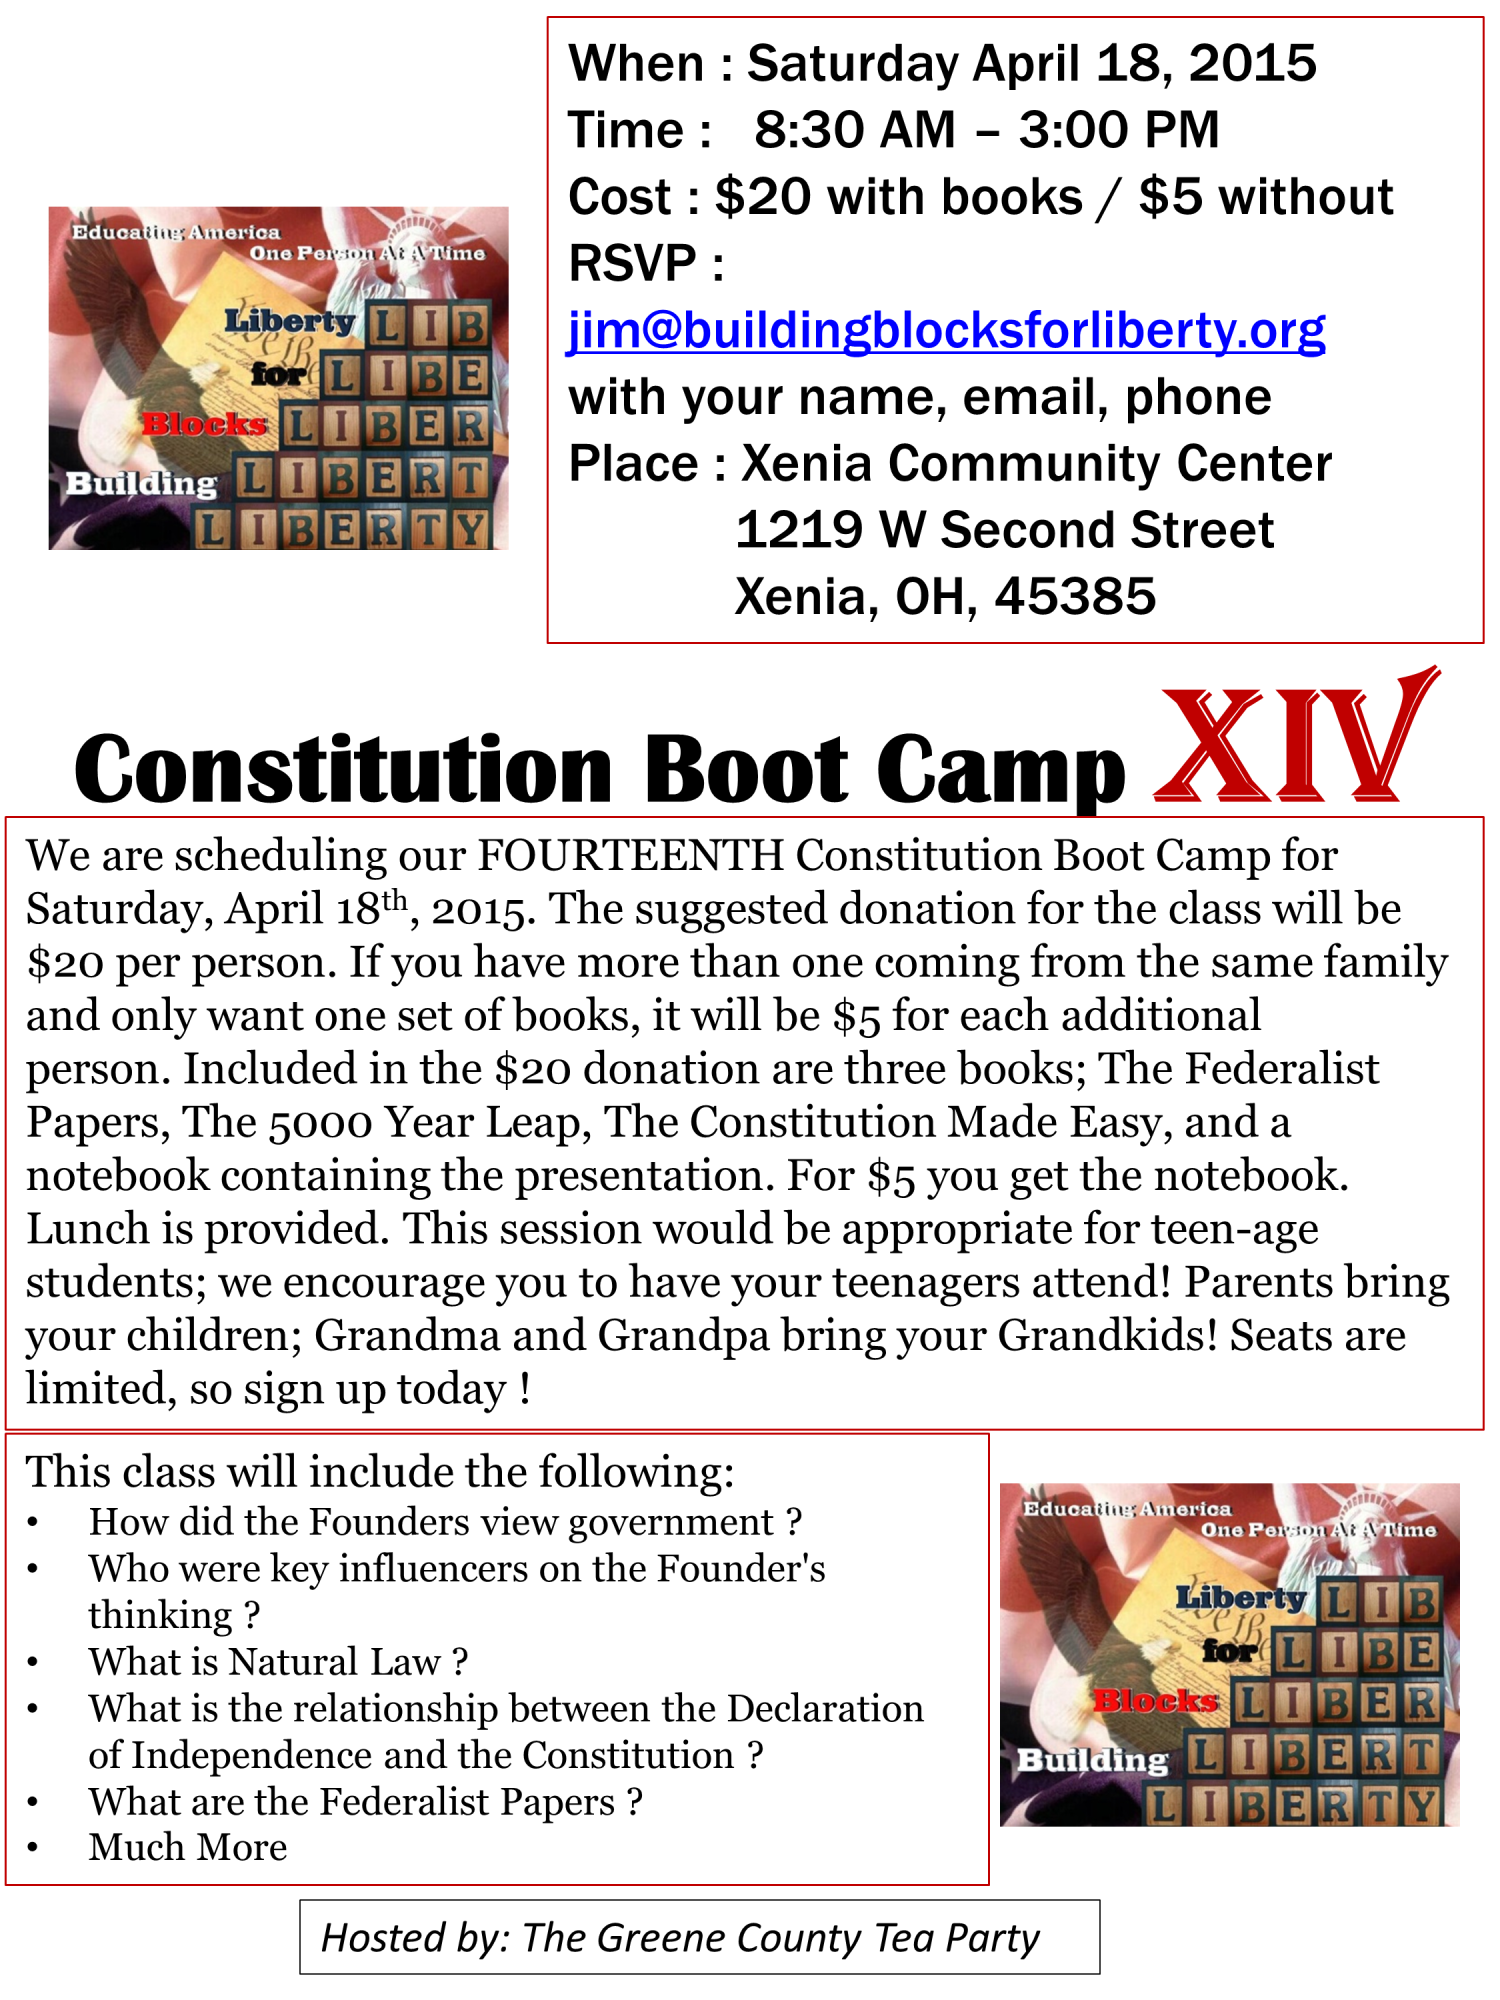 Constitution Boot Camp Flyer XIV 1219 W 2nd St-host GCTP